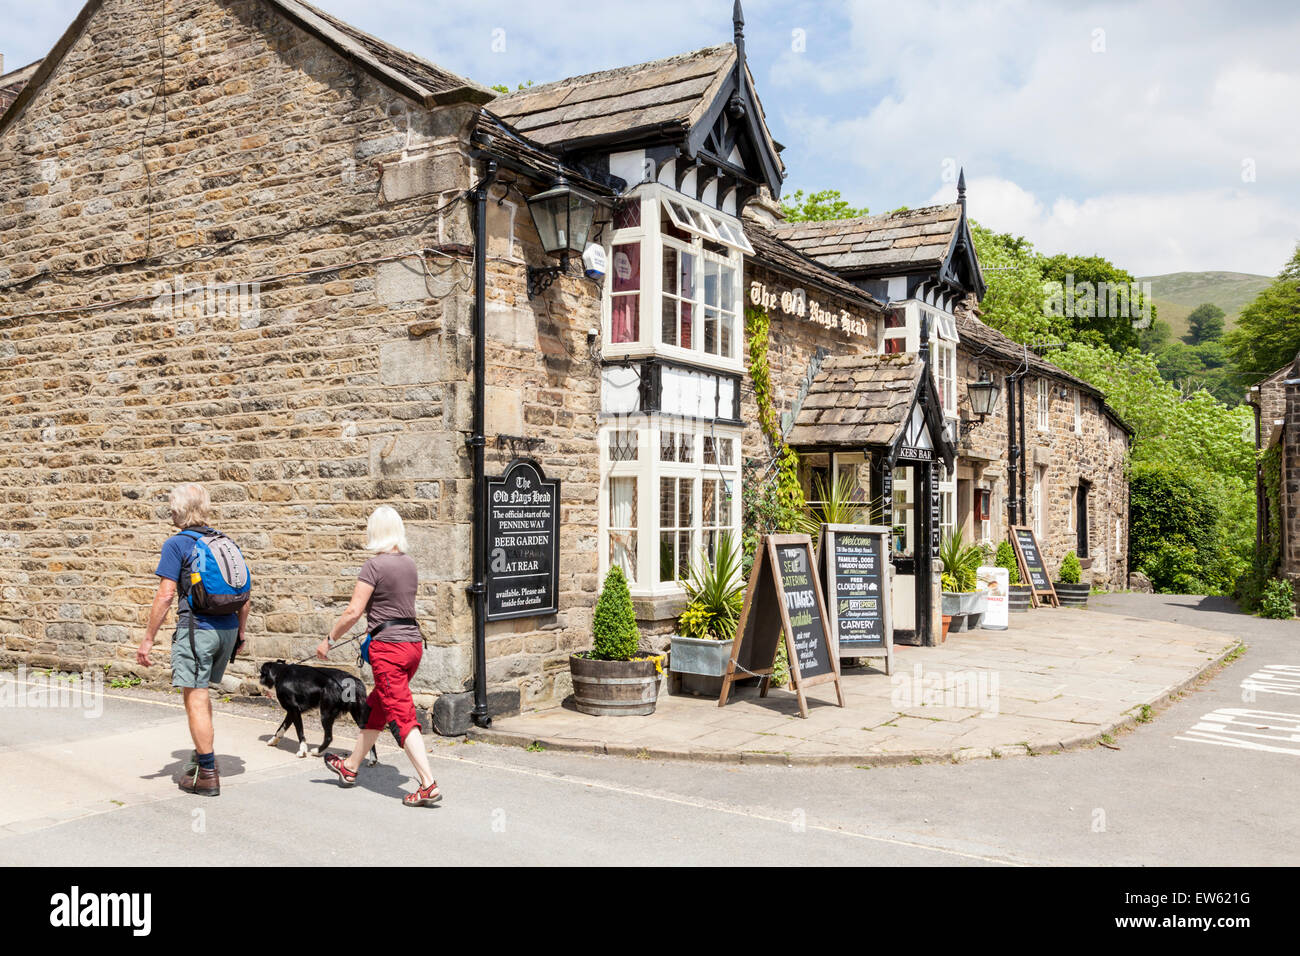 The Old Nag's Head pub, at the start of the Pennine Way, Edale, Derbyshire, England, UK - Stock Image